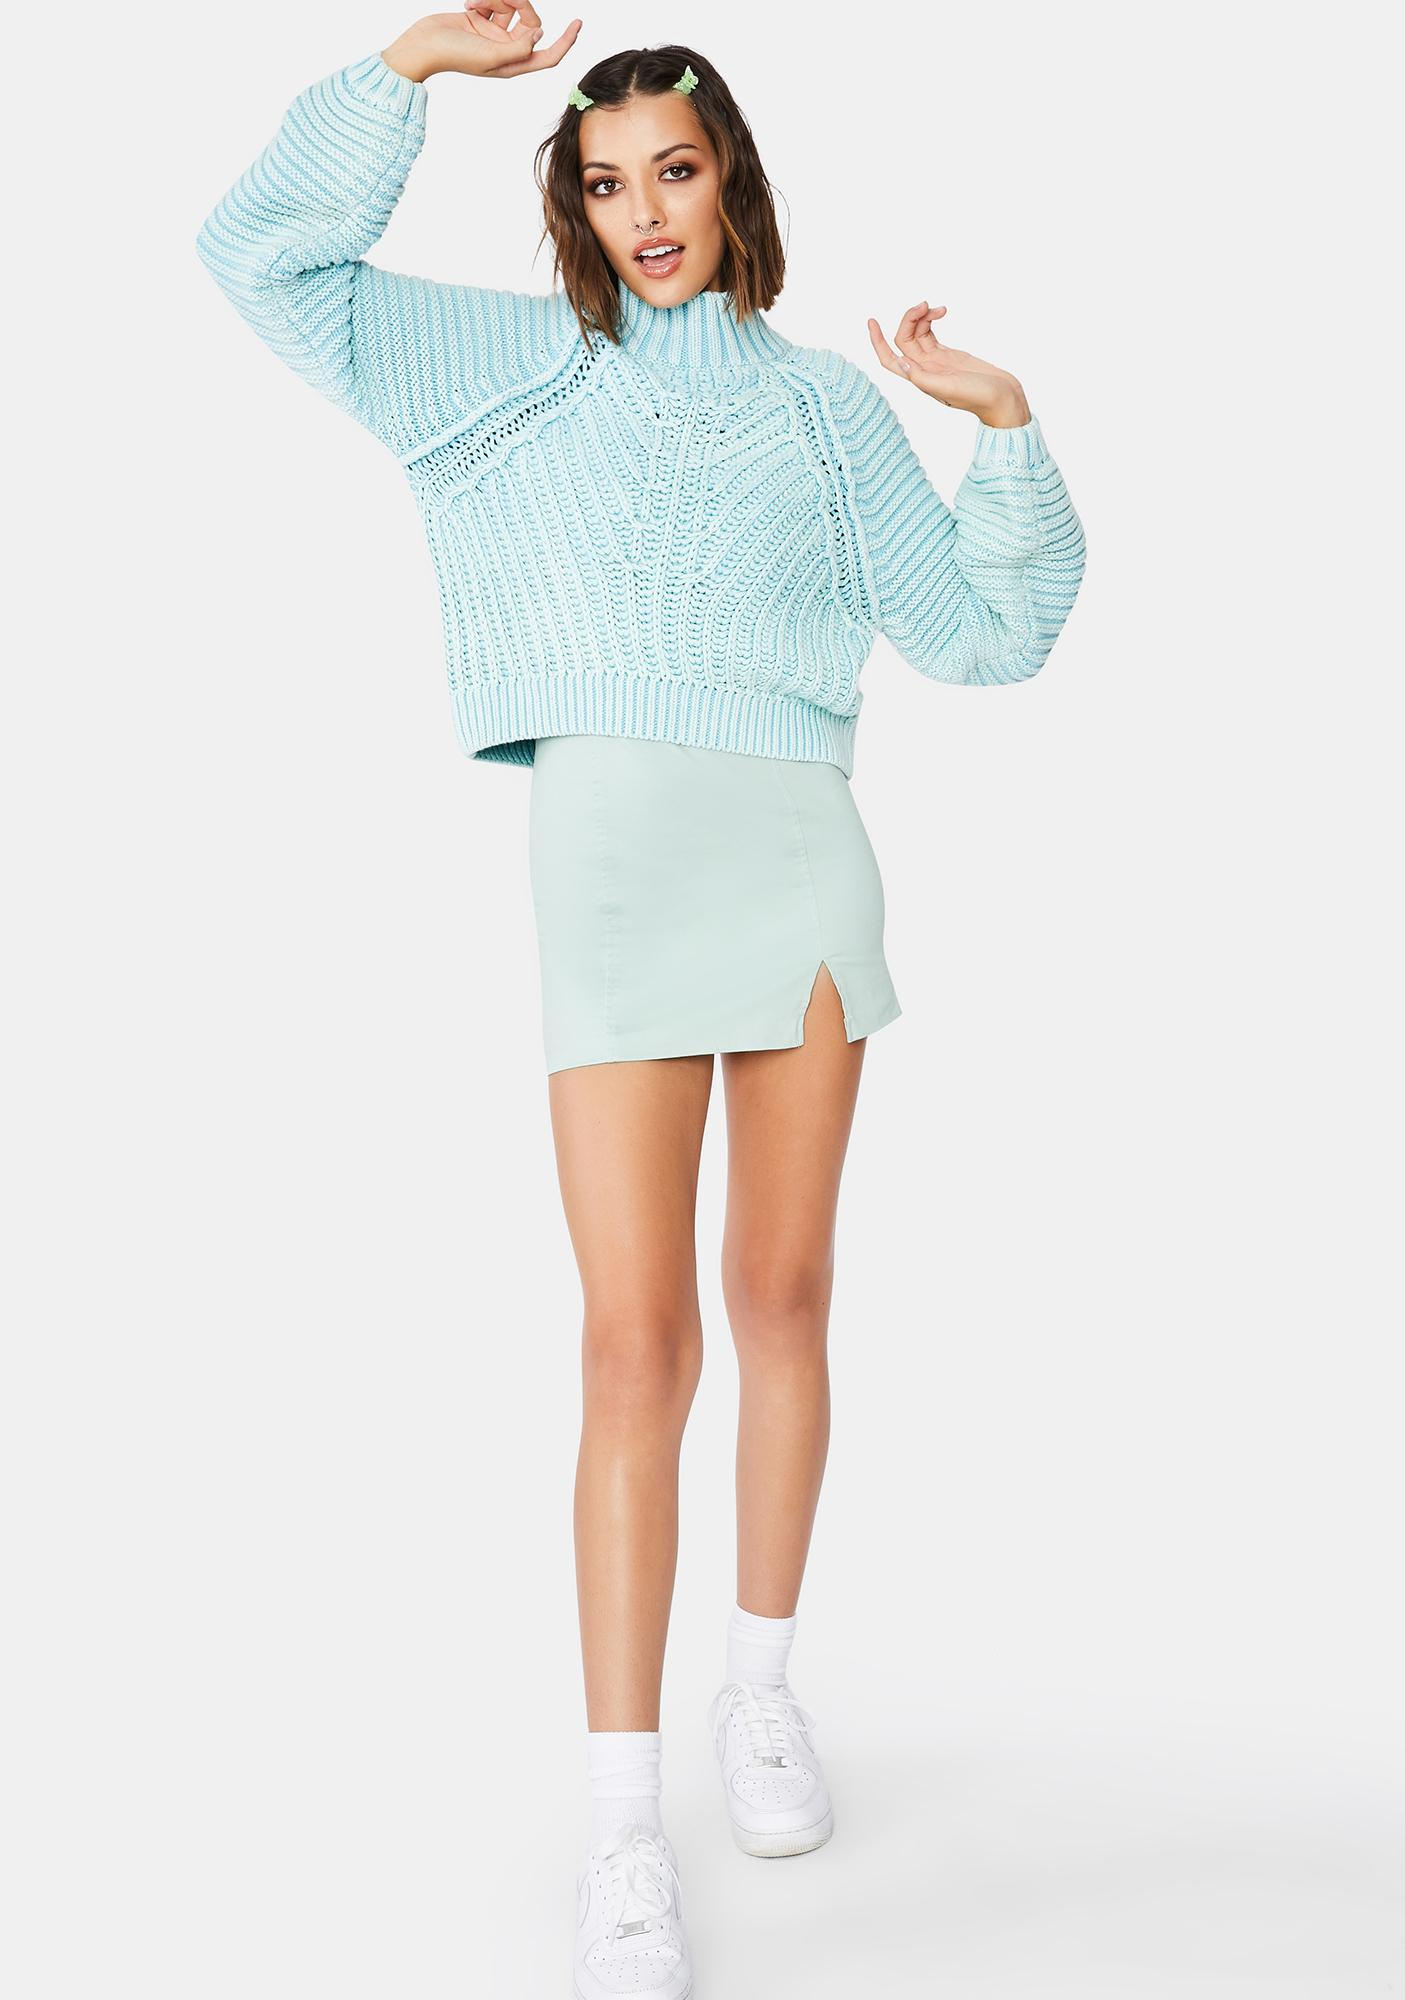 Free People Sweetheart Knit Sweater